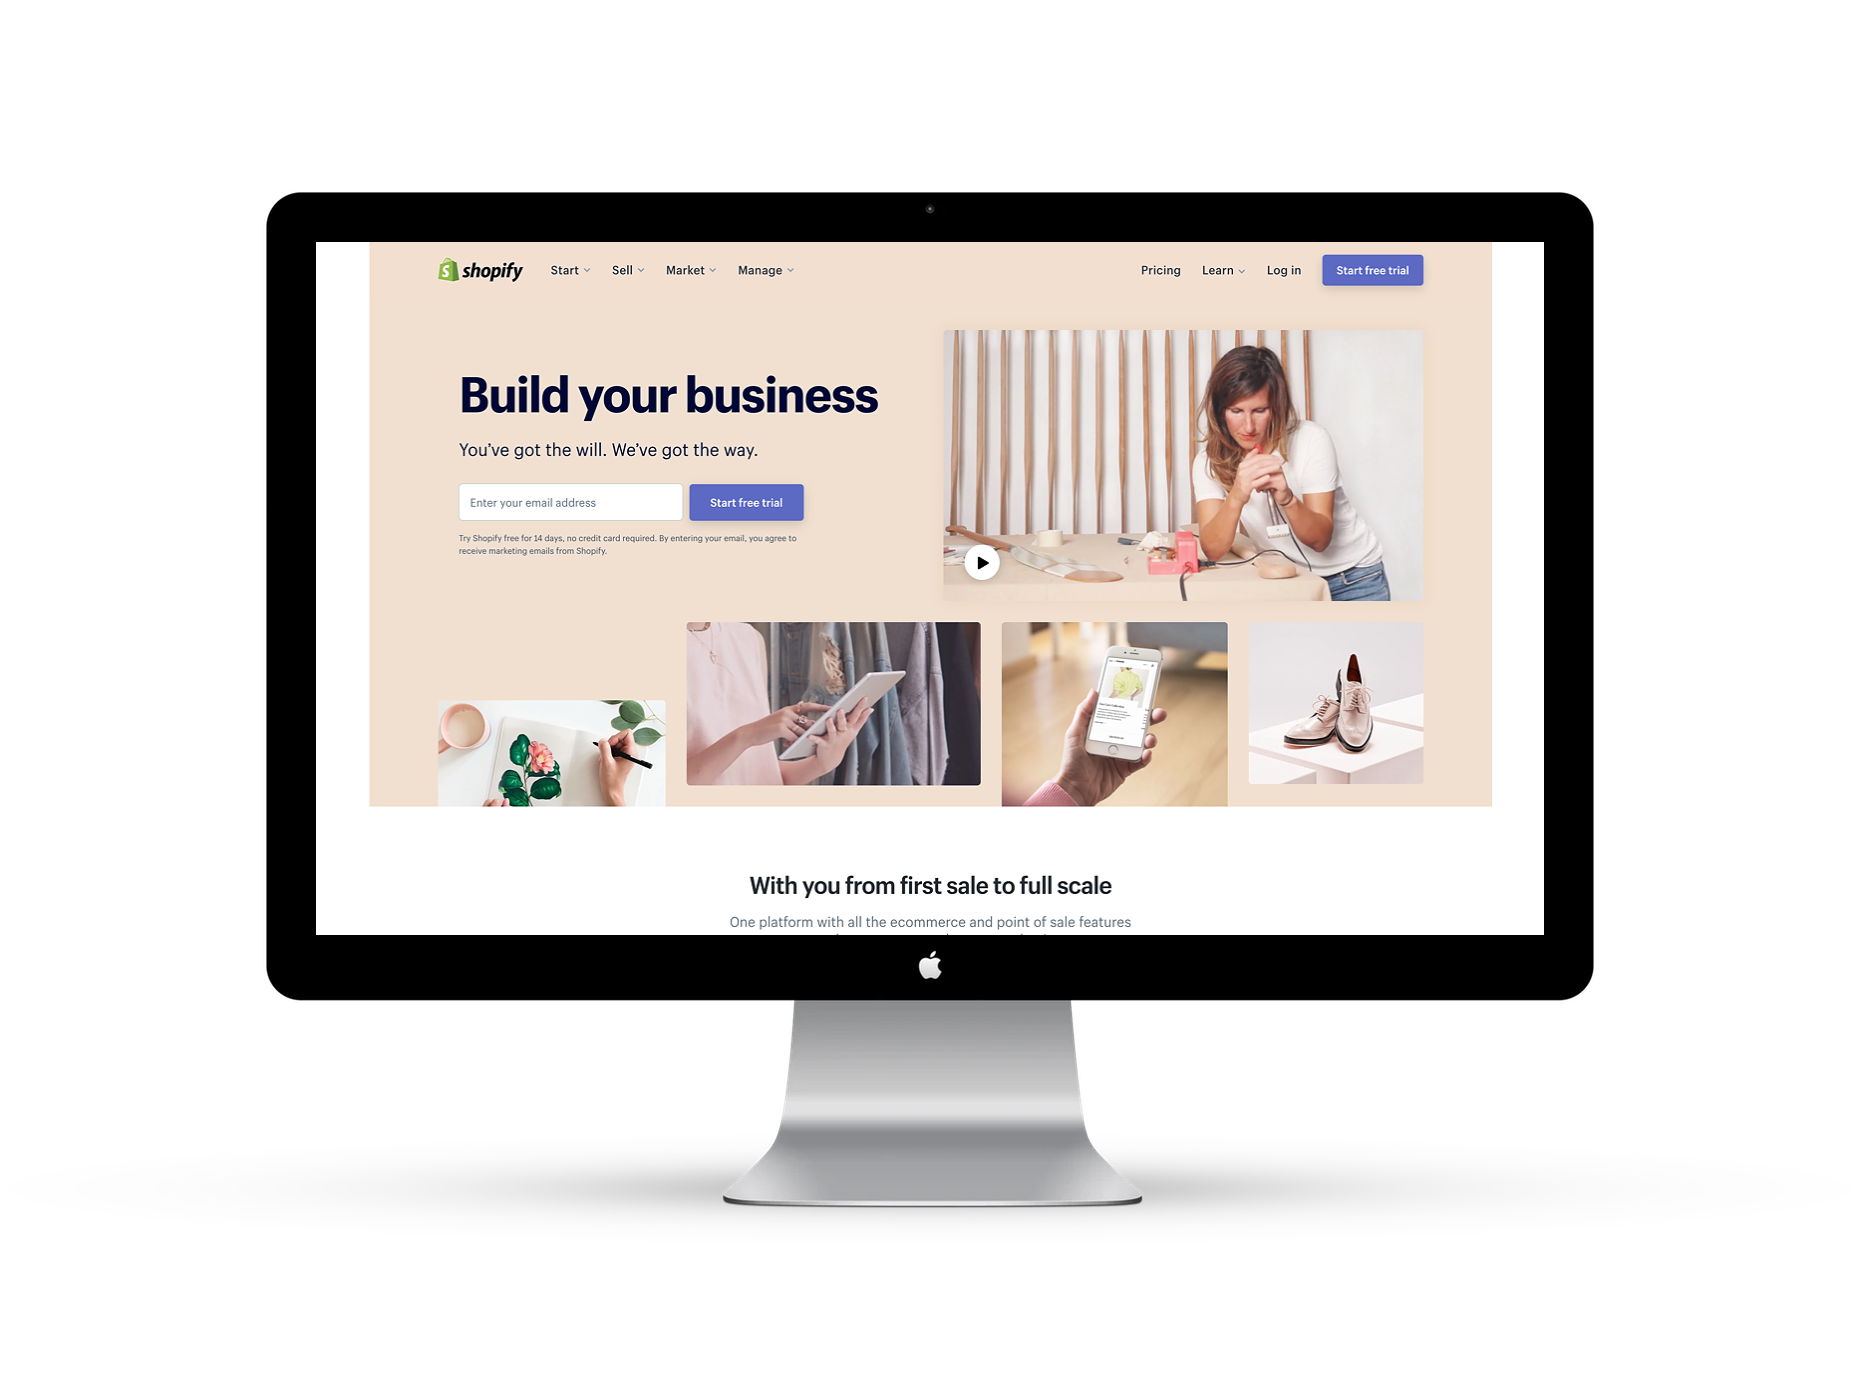 Shopify Web Design - Killer e-commerce functionality with room to grow.